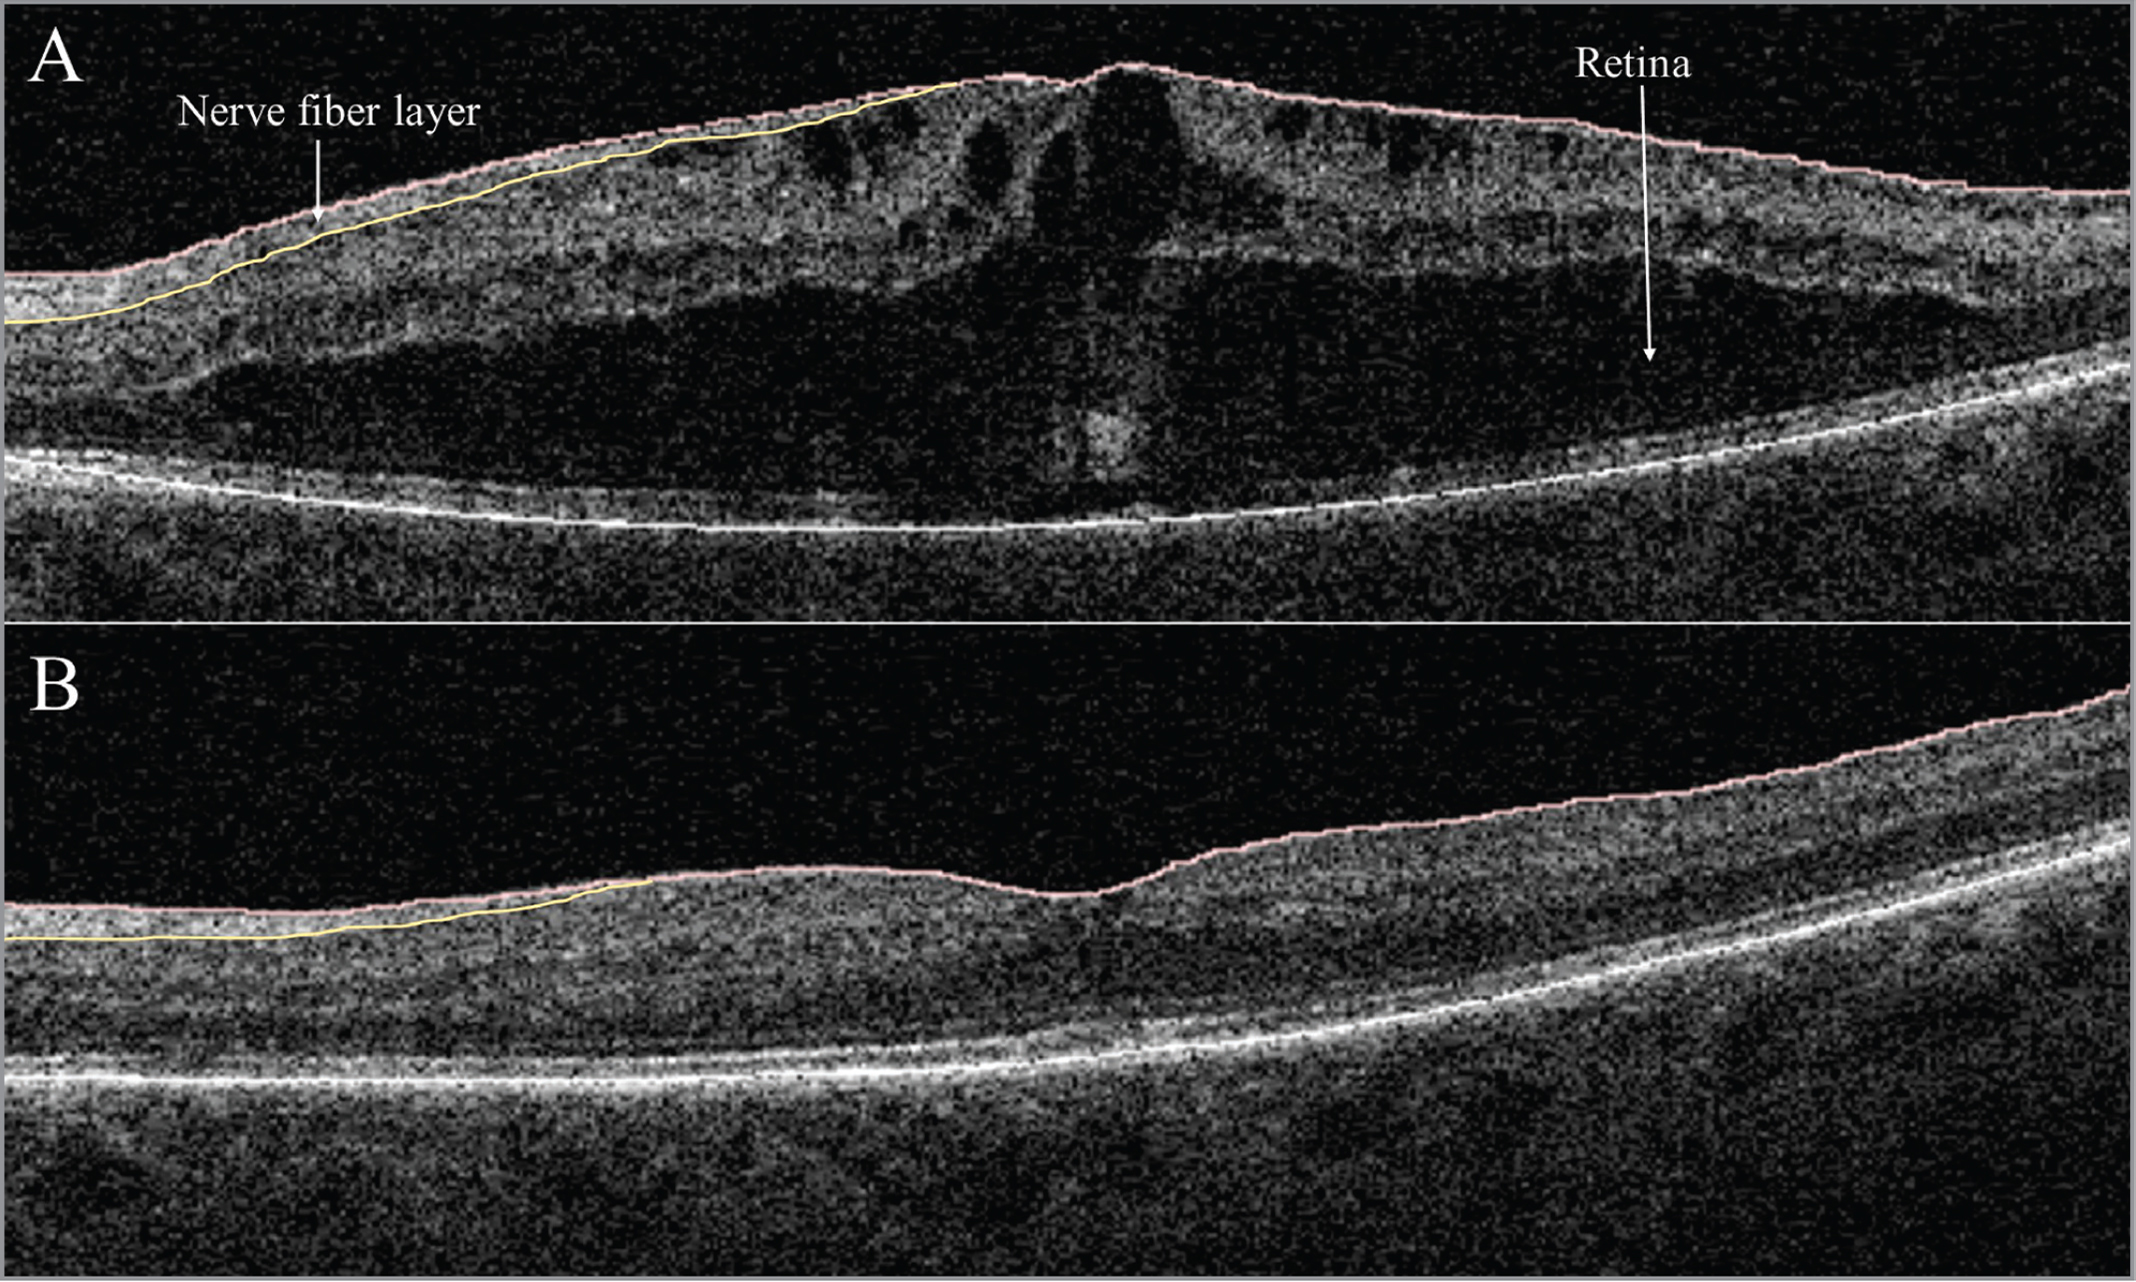 Example study case (A) of diabetic macular edema in the left eye with wet retinal volume of 17.53 mm3. (B) Post-therapeutic reduced macular edema with original retinal volume of 10.19 mm3 and adjusted dry retinal volume of 10.45 mm3.